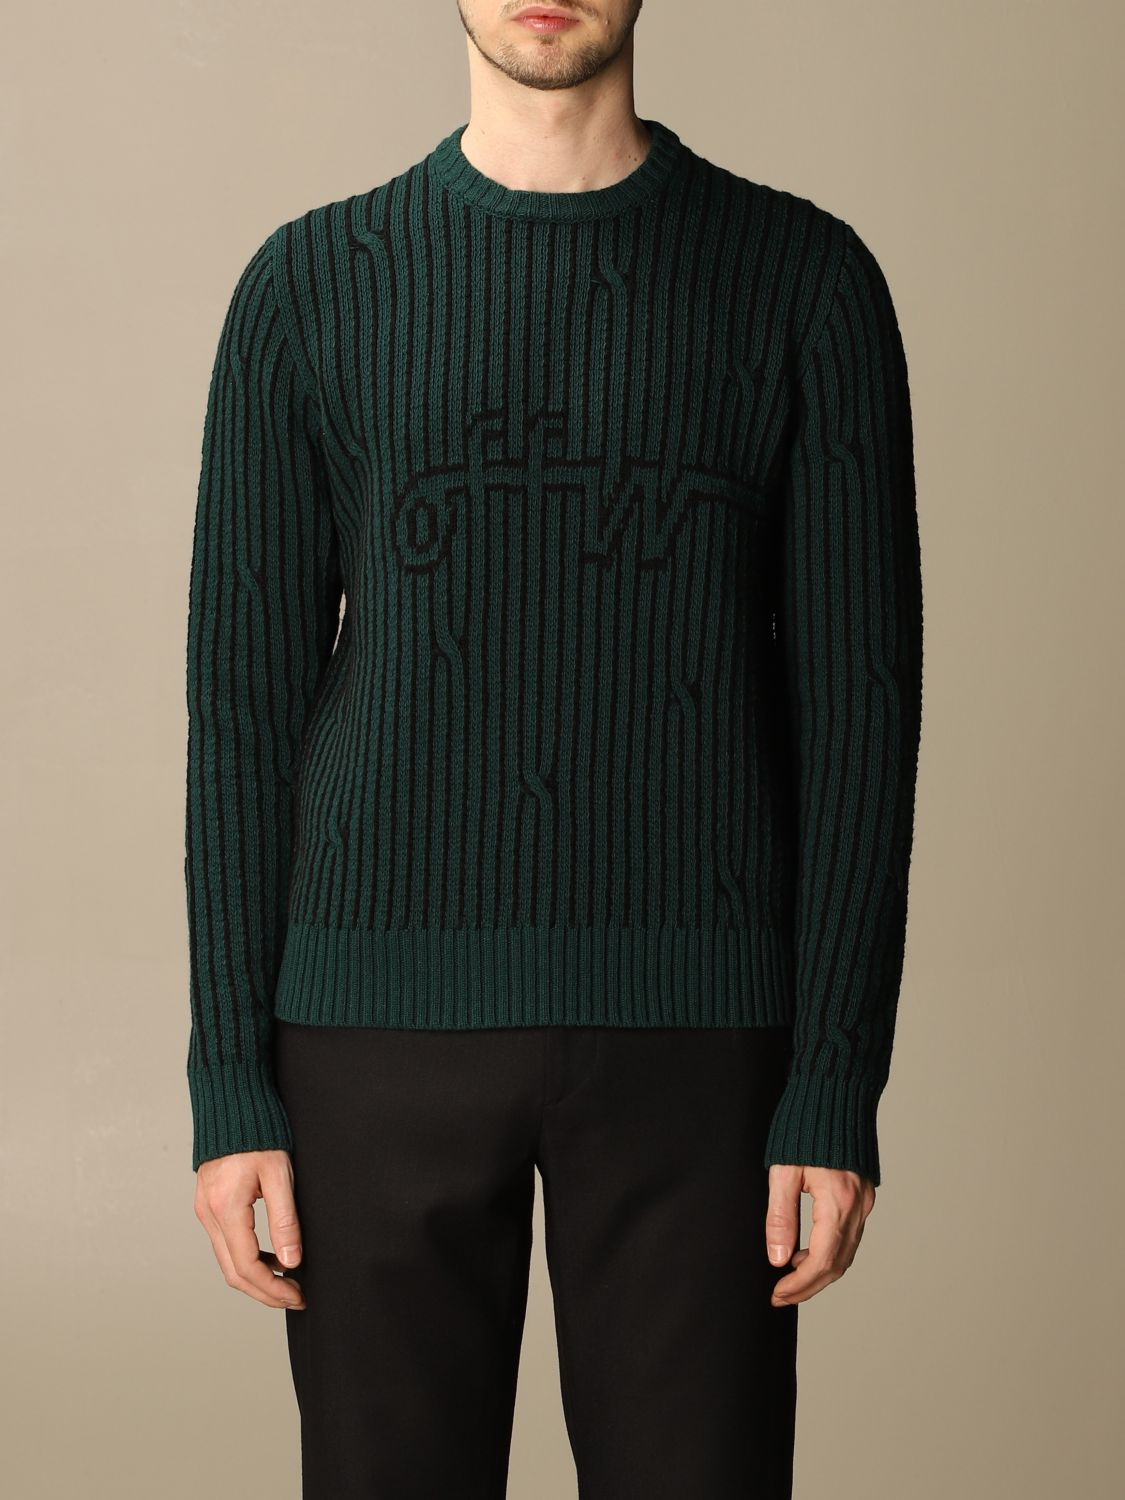 Sweater Off White: Off White men's sweater green 1